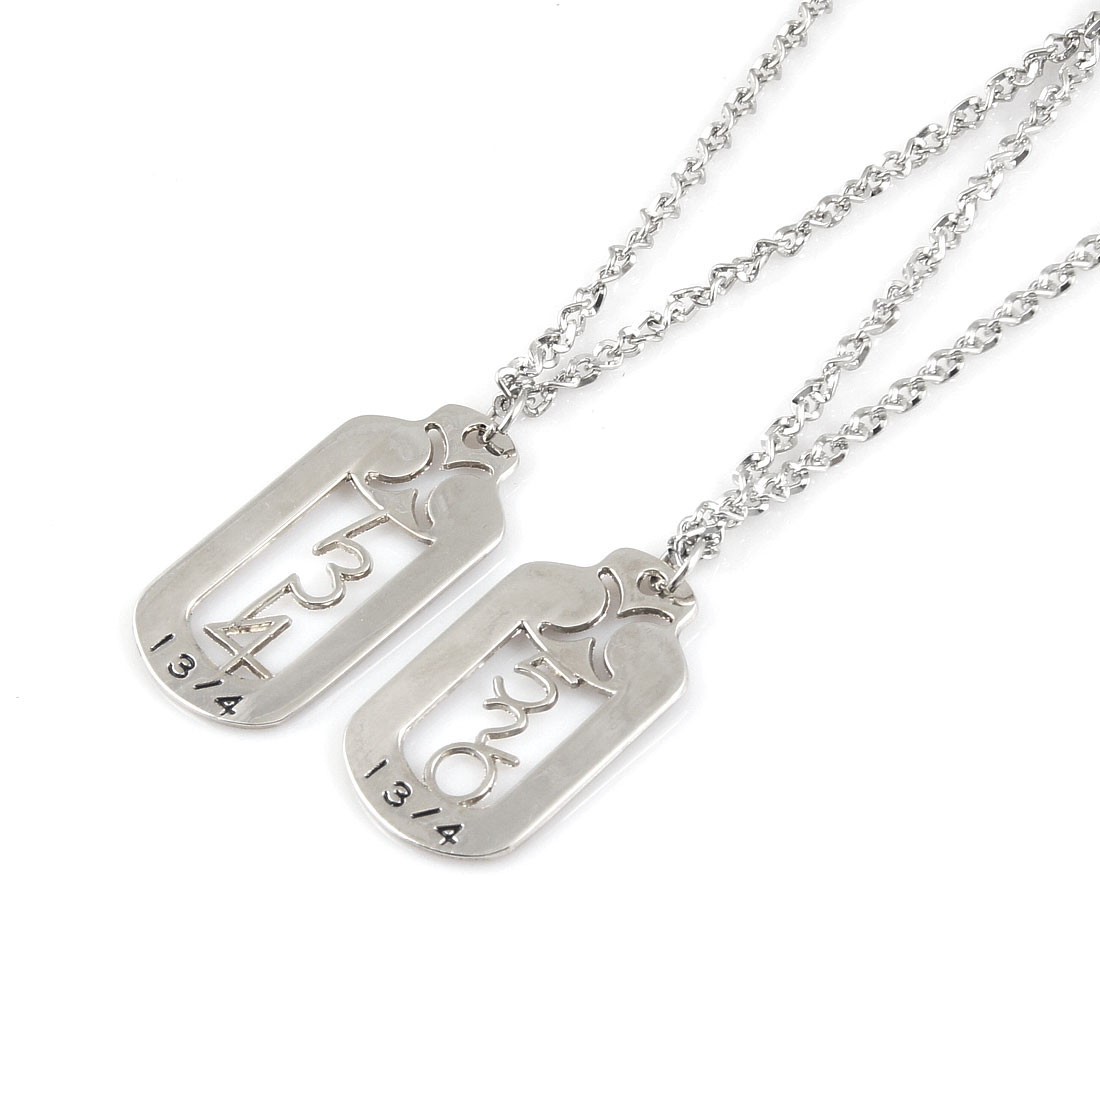 Pair Men Women Silver Tone Hollow Arabic Numbers Pendant Chain Chocker Necklace